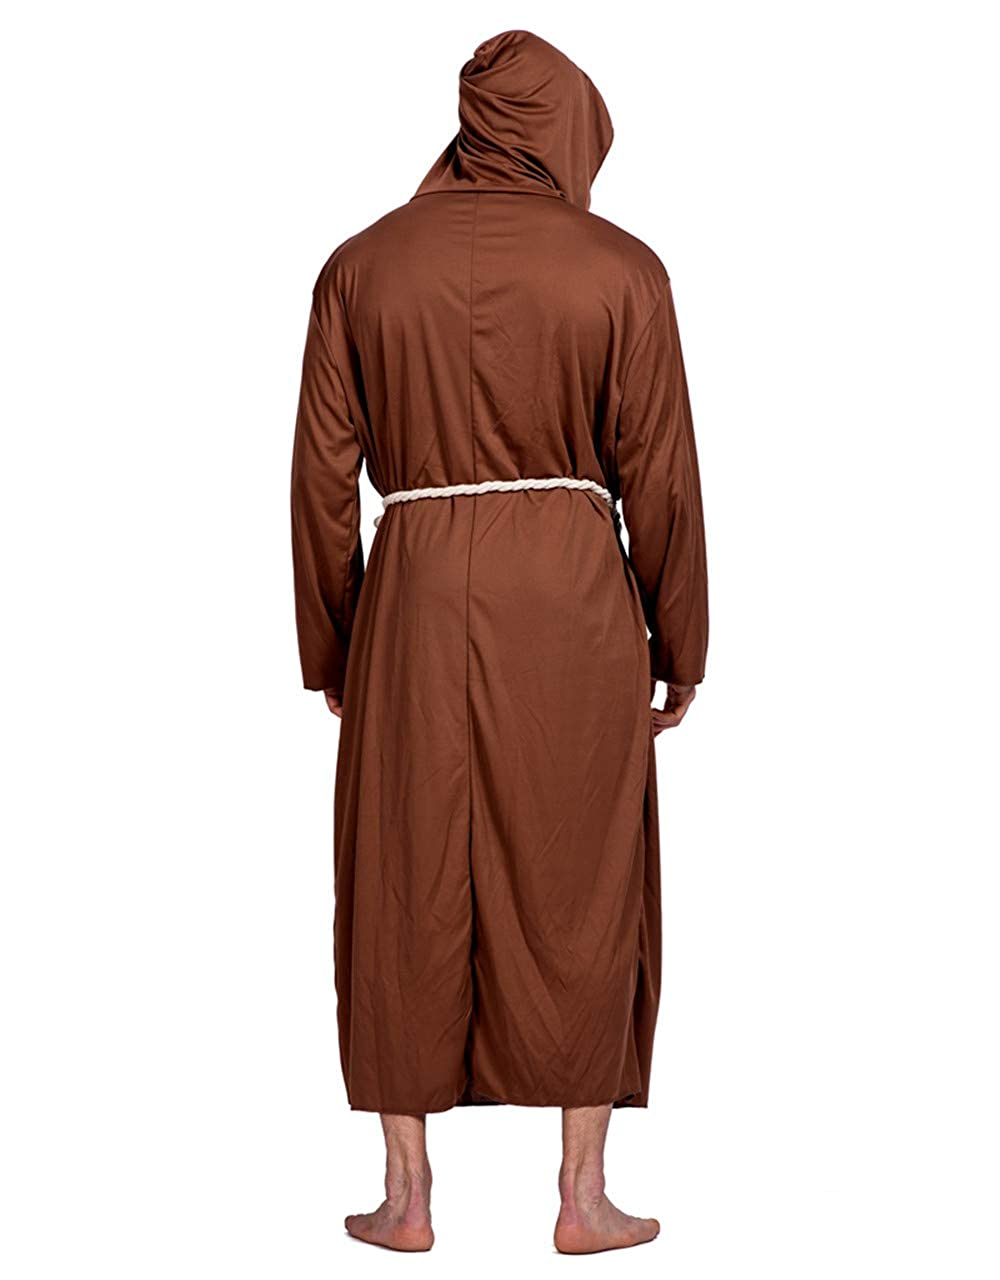 5398cad94c Halloween buddhist monk cosplay costume long hooded medieval monk robe  brown one size for all clothing